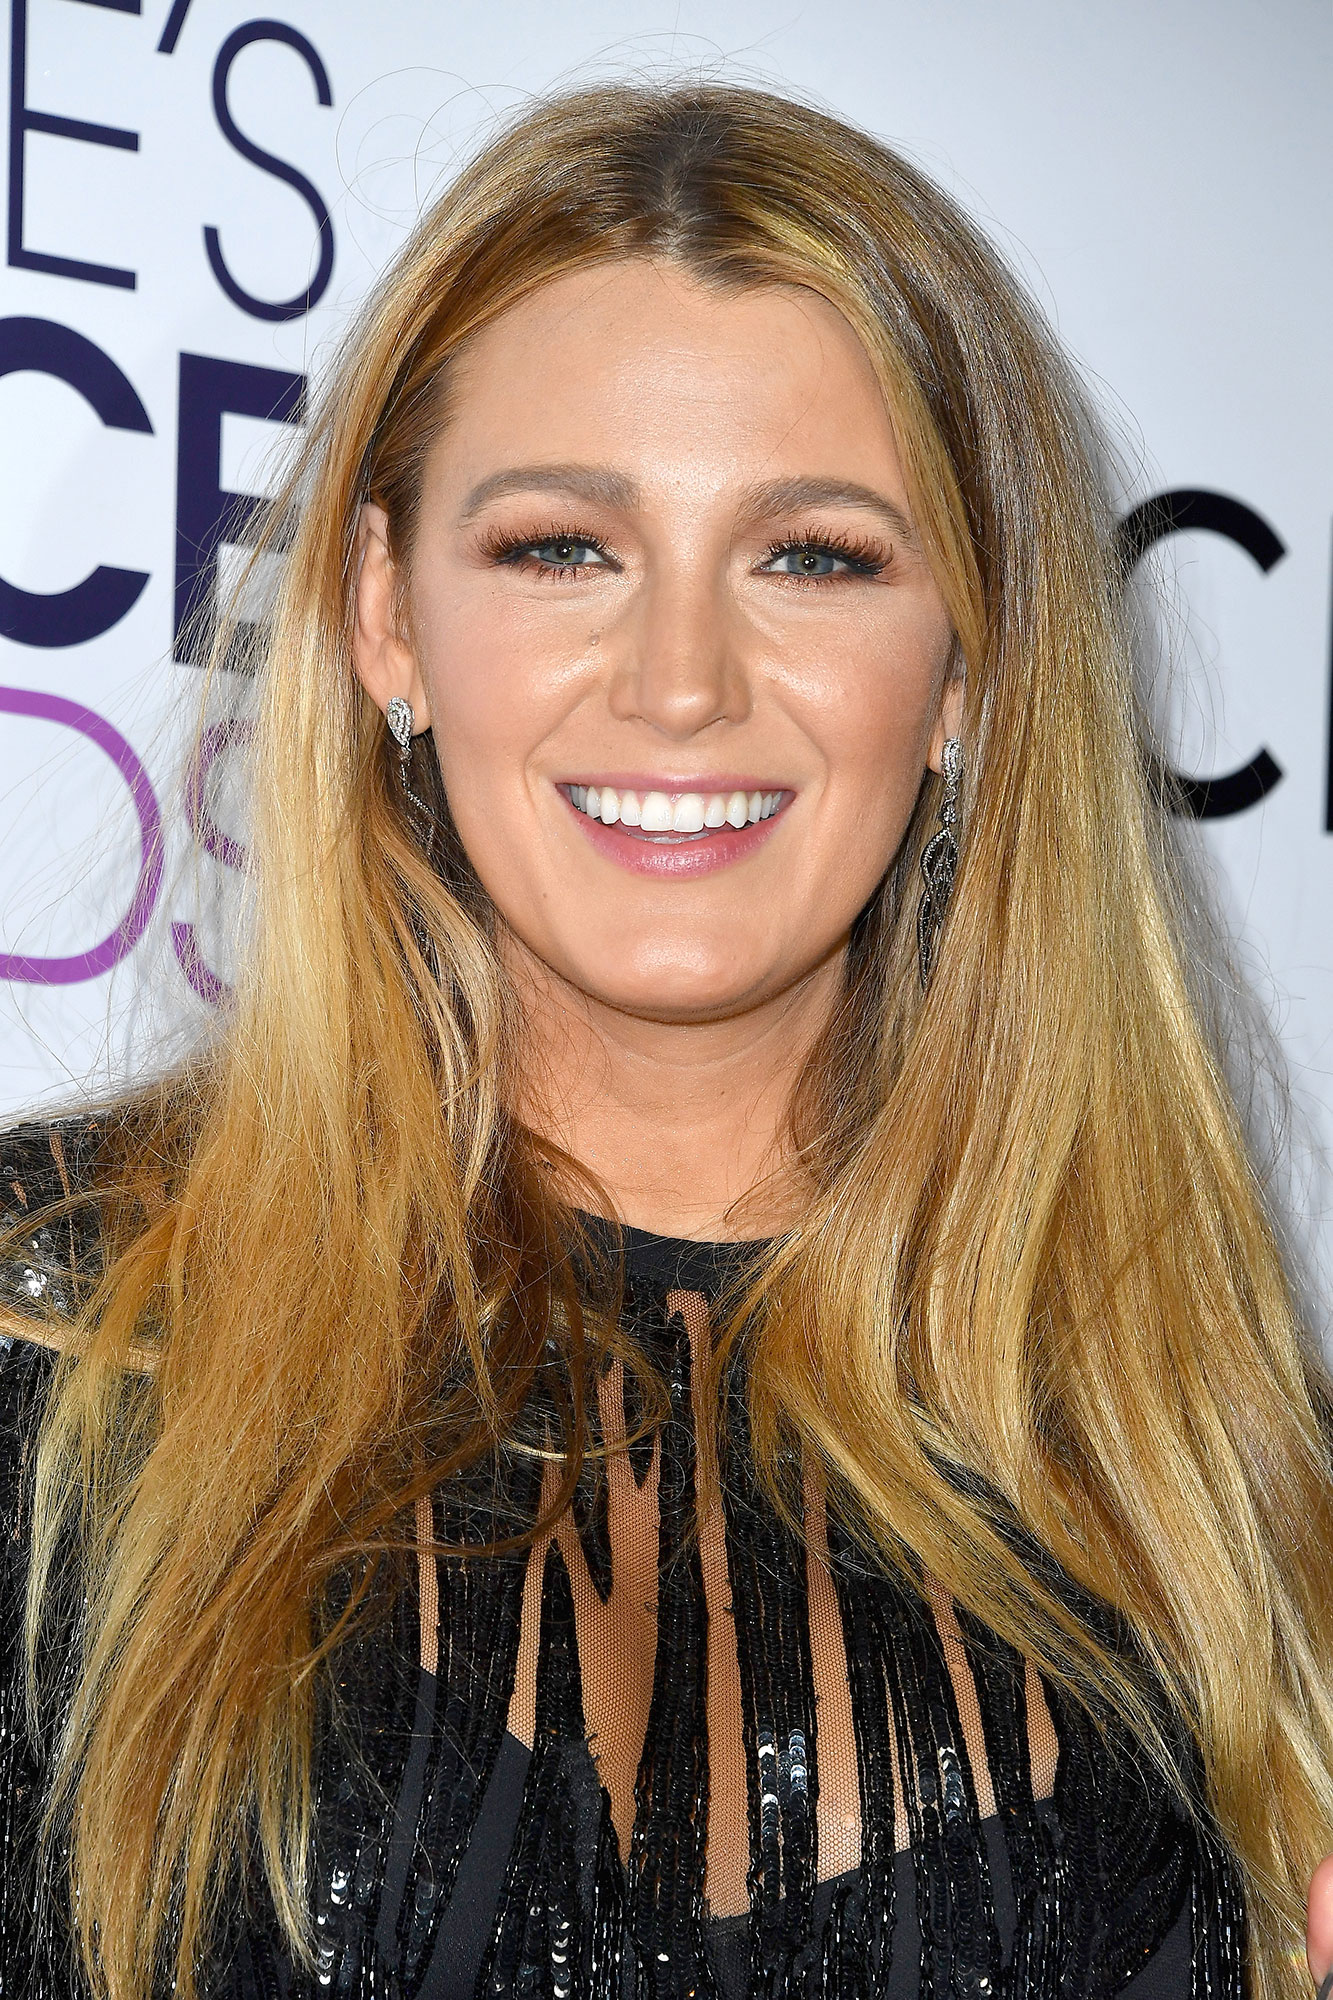 Blake Lively - Stars Who Have Never Won Oscars - Lively's Oscars rap sheet isn't so lively, so to speak. The A Simple Favor star is still waiting on her first nomination.